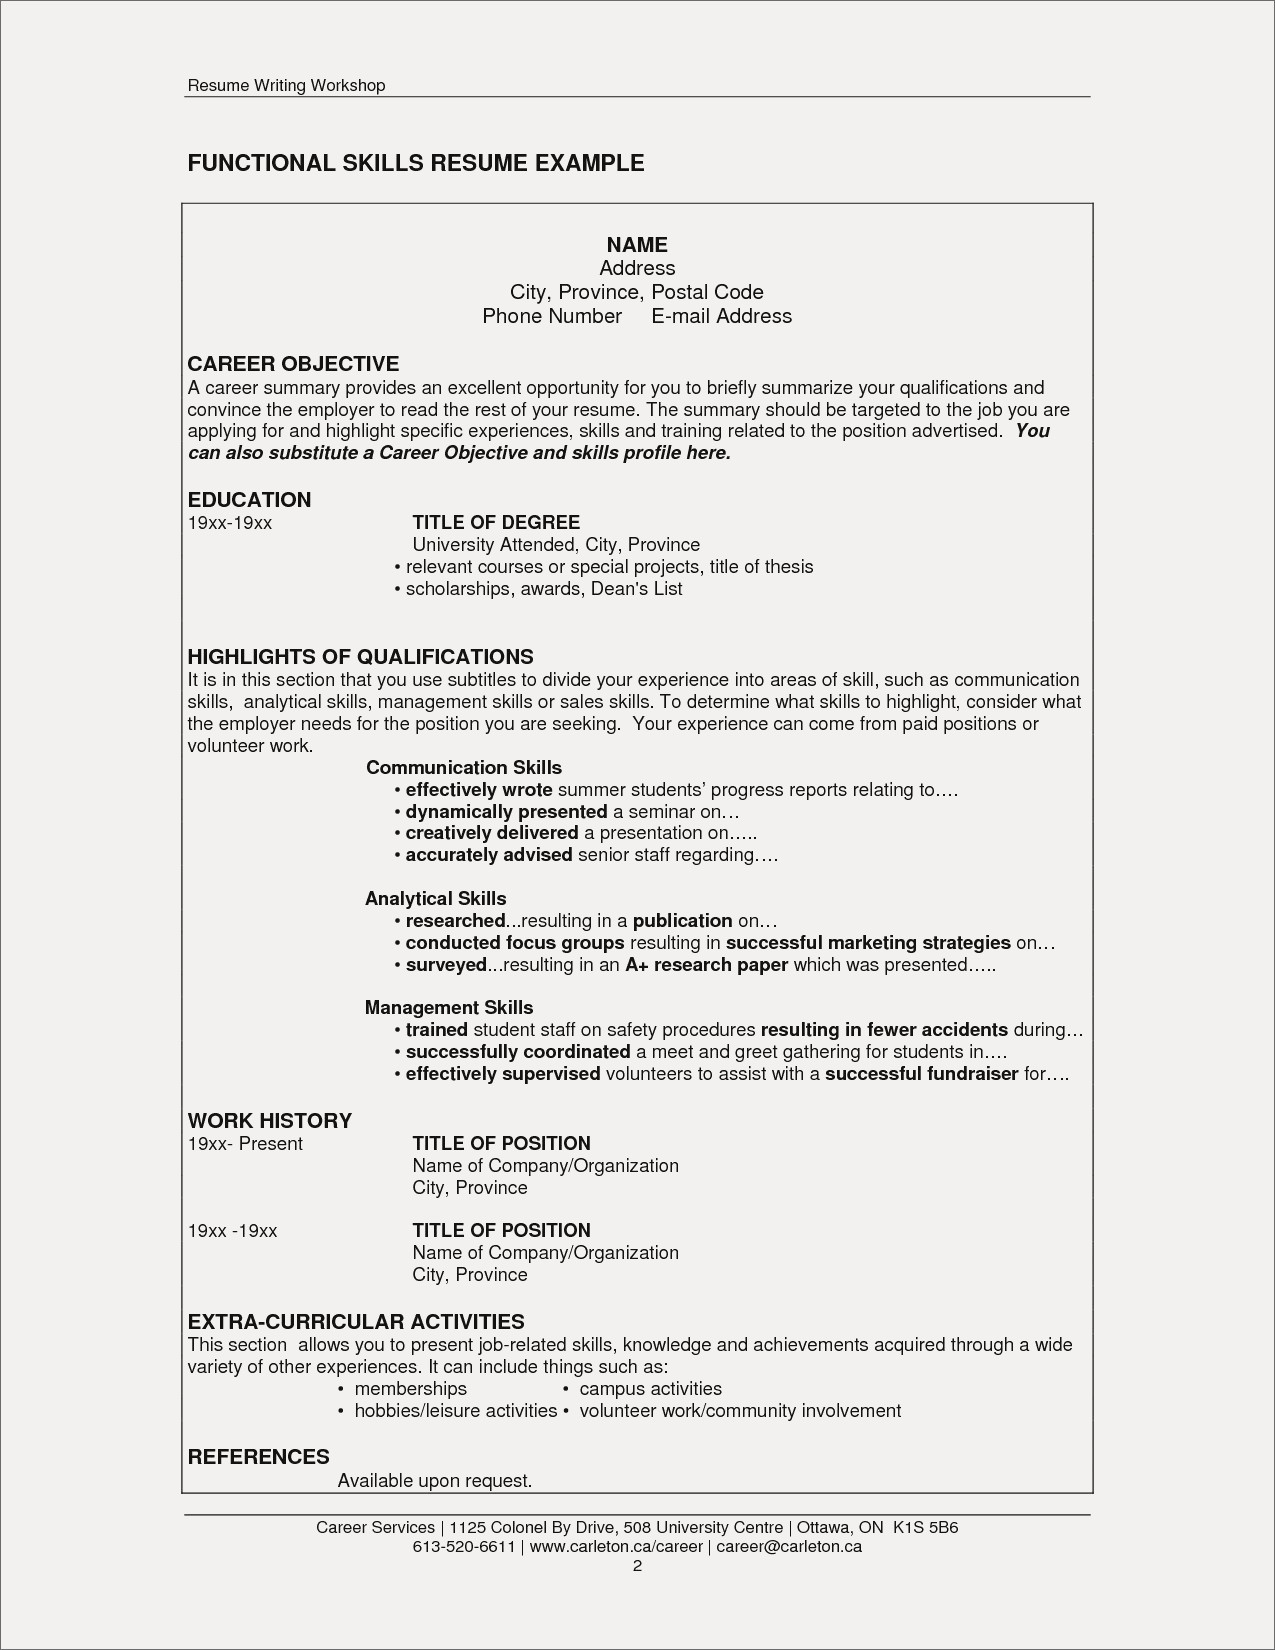 Qualifications to Put On Resume - Skills and Abilities to Put A Resume Refrence Resume Skills and